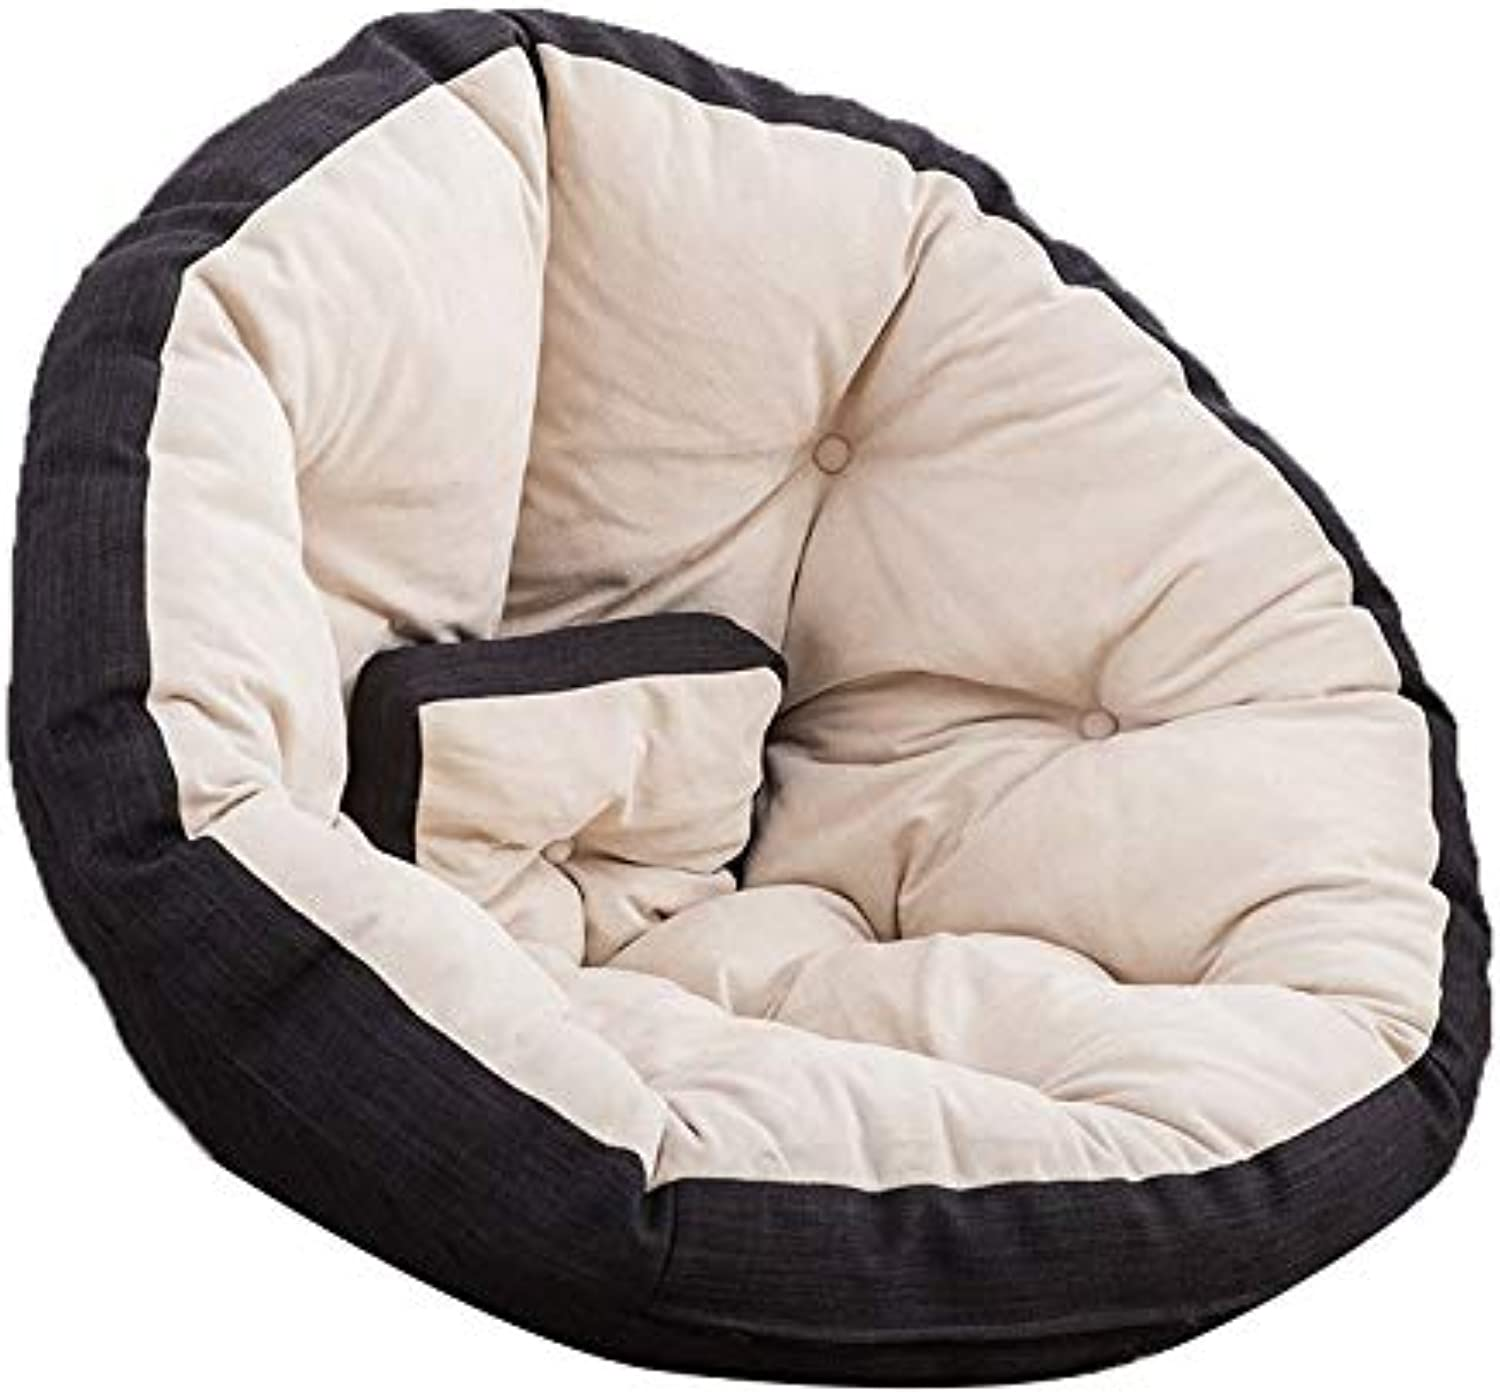 Sofas Bean Bags portable Cuddle Chair Washable Baby Sofa Kids Bedroom Fur (color   Black, Size   40.55  27.56  3.94in)